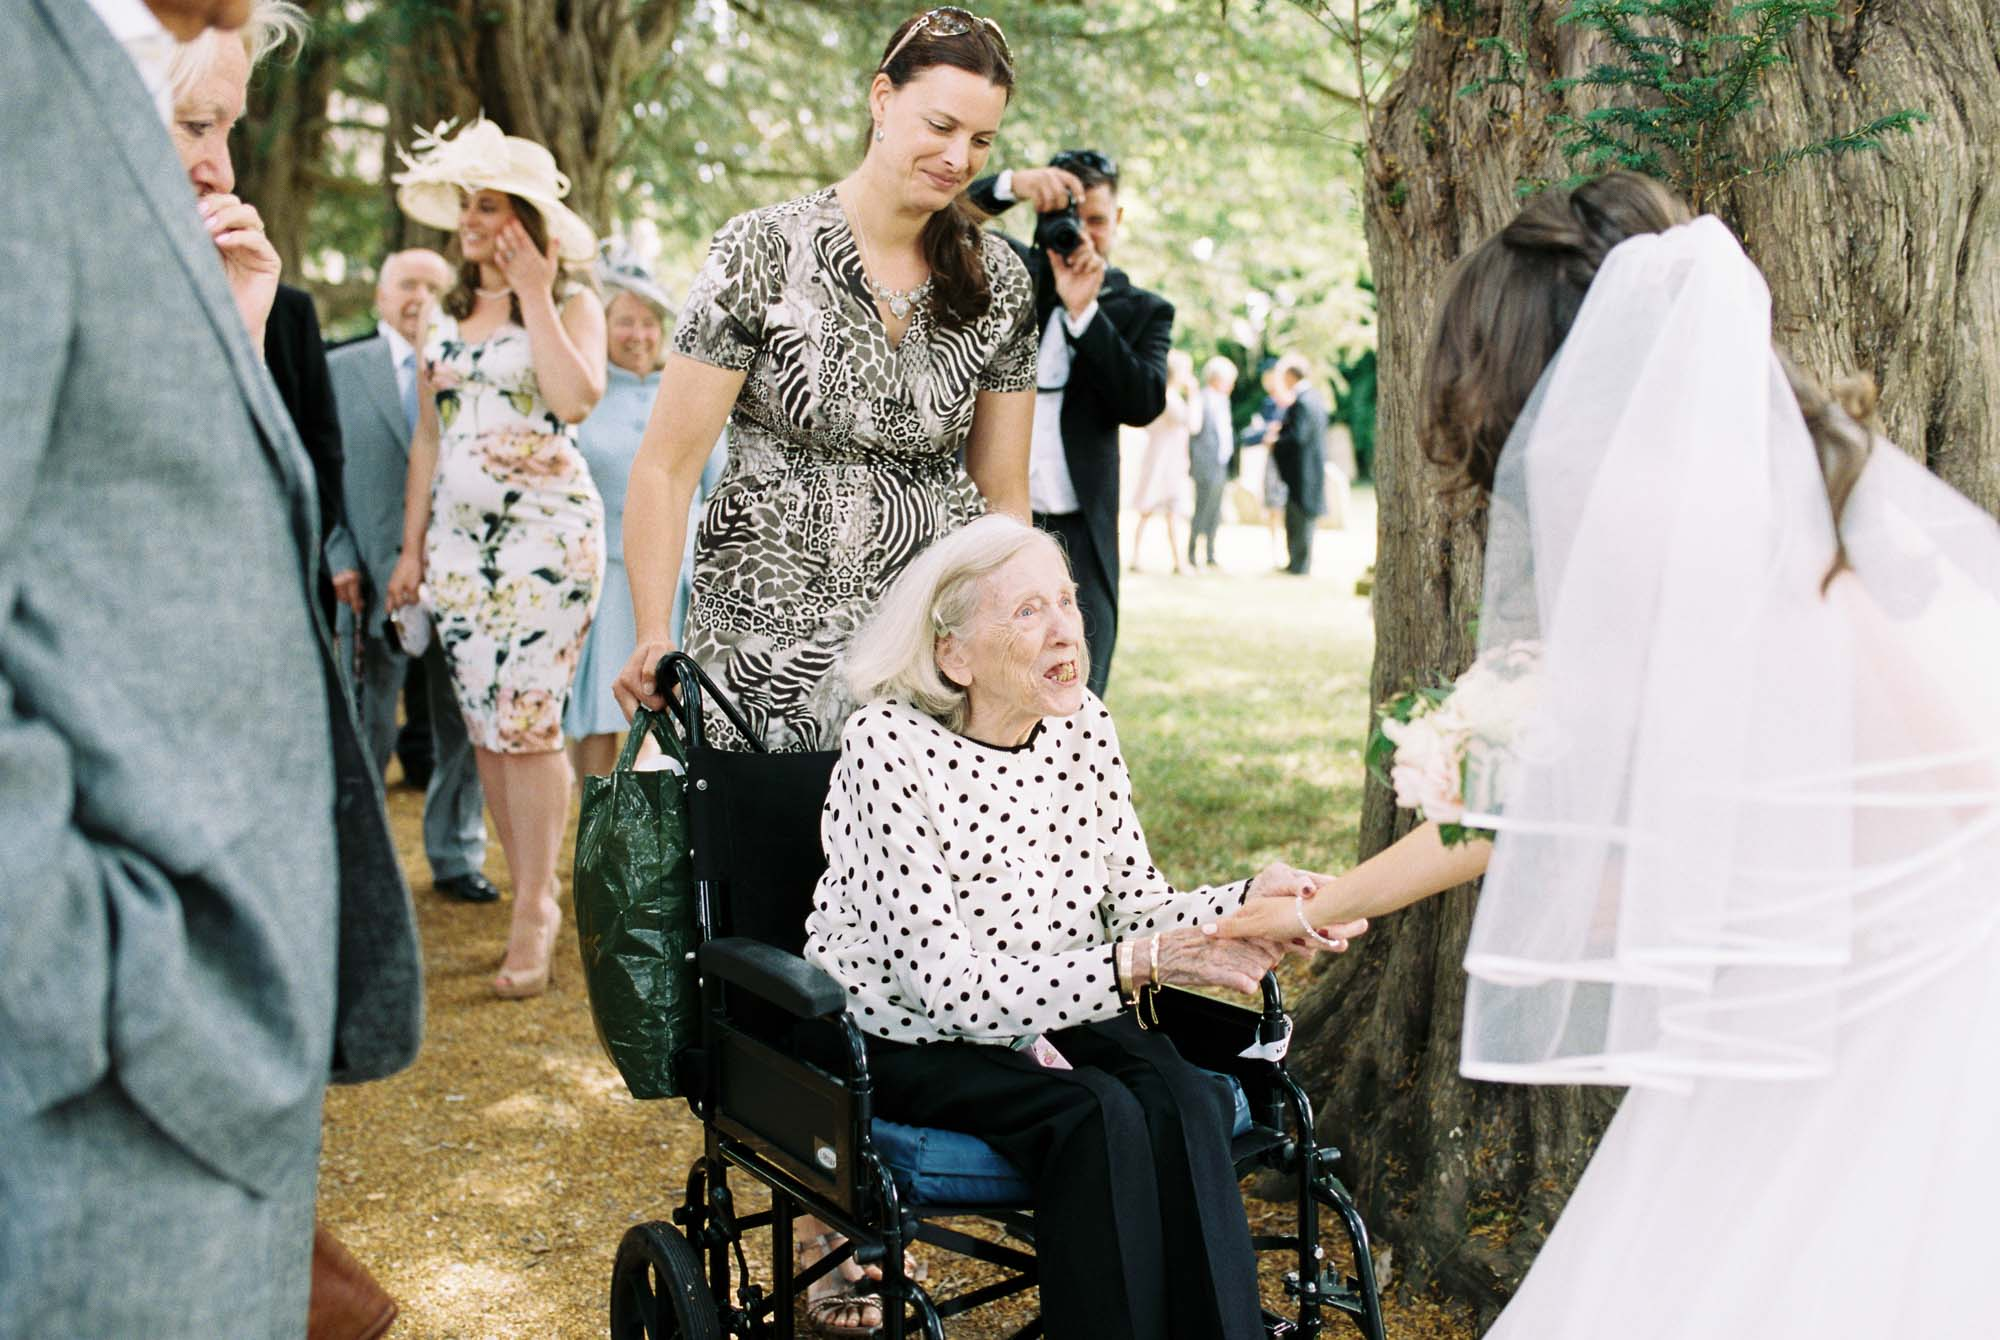 Bride greeting grandmother at wedding